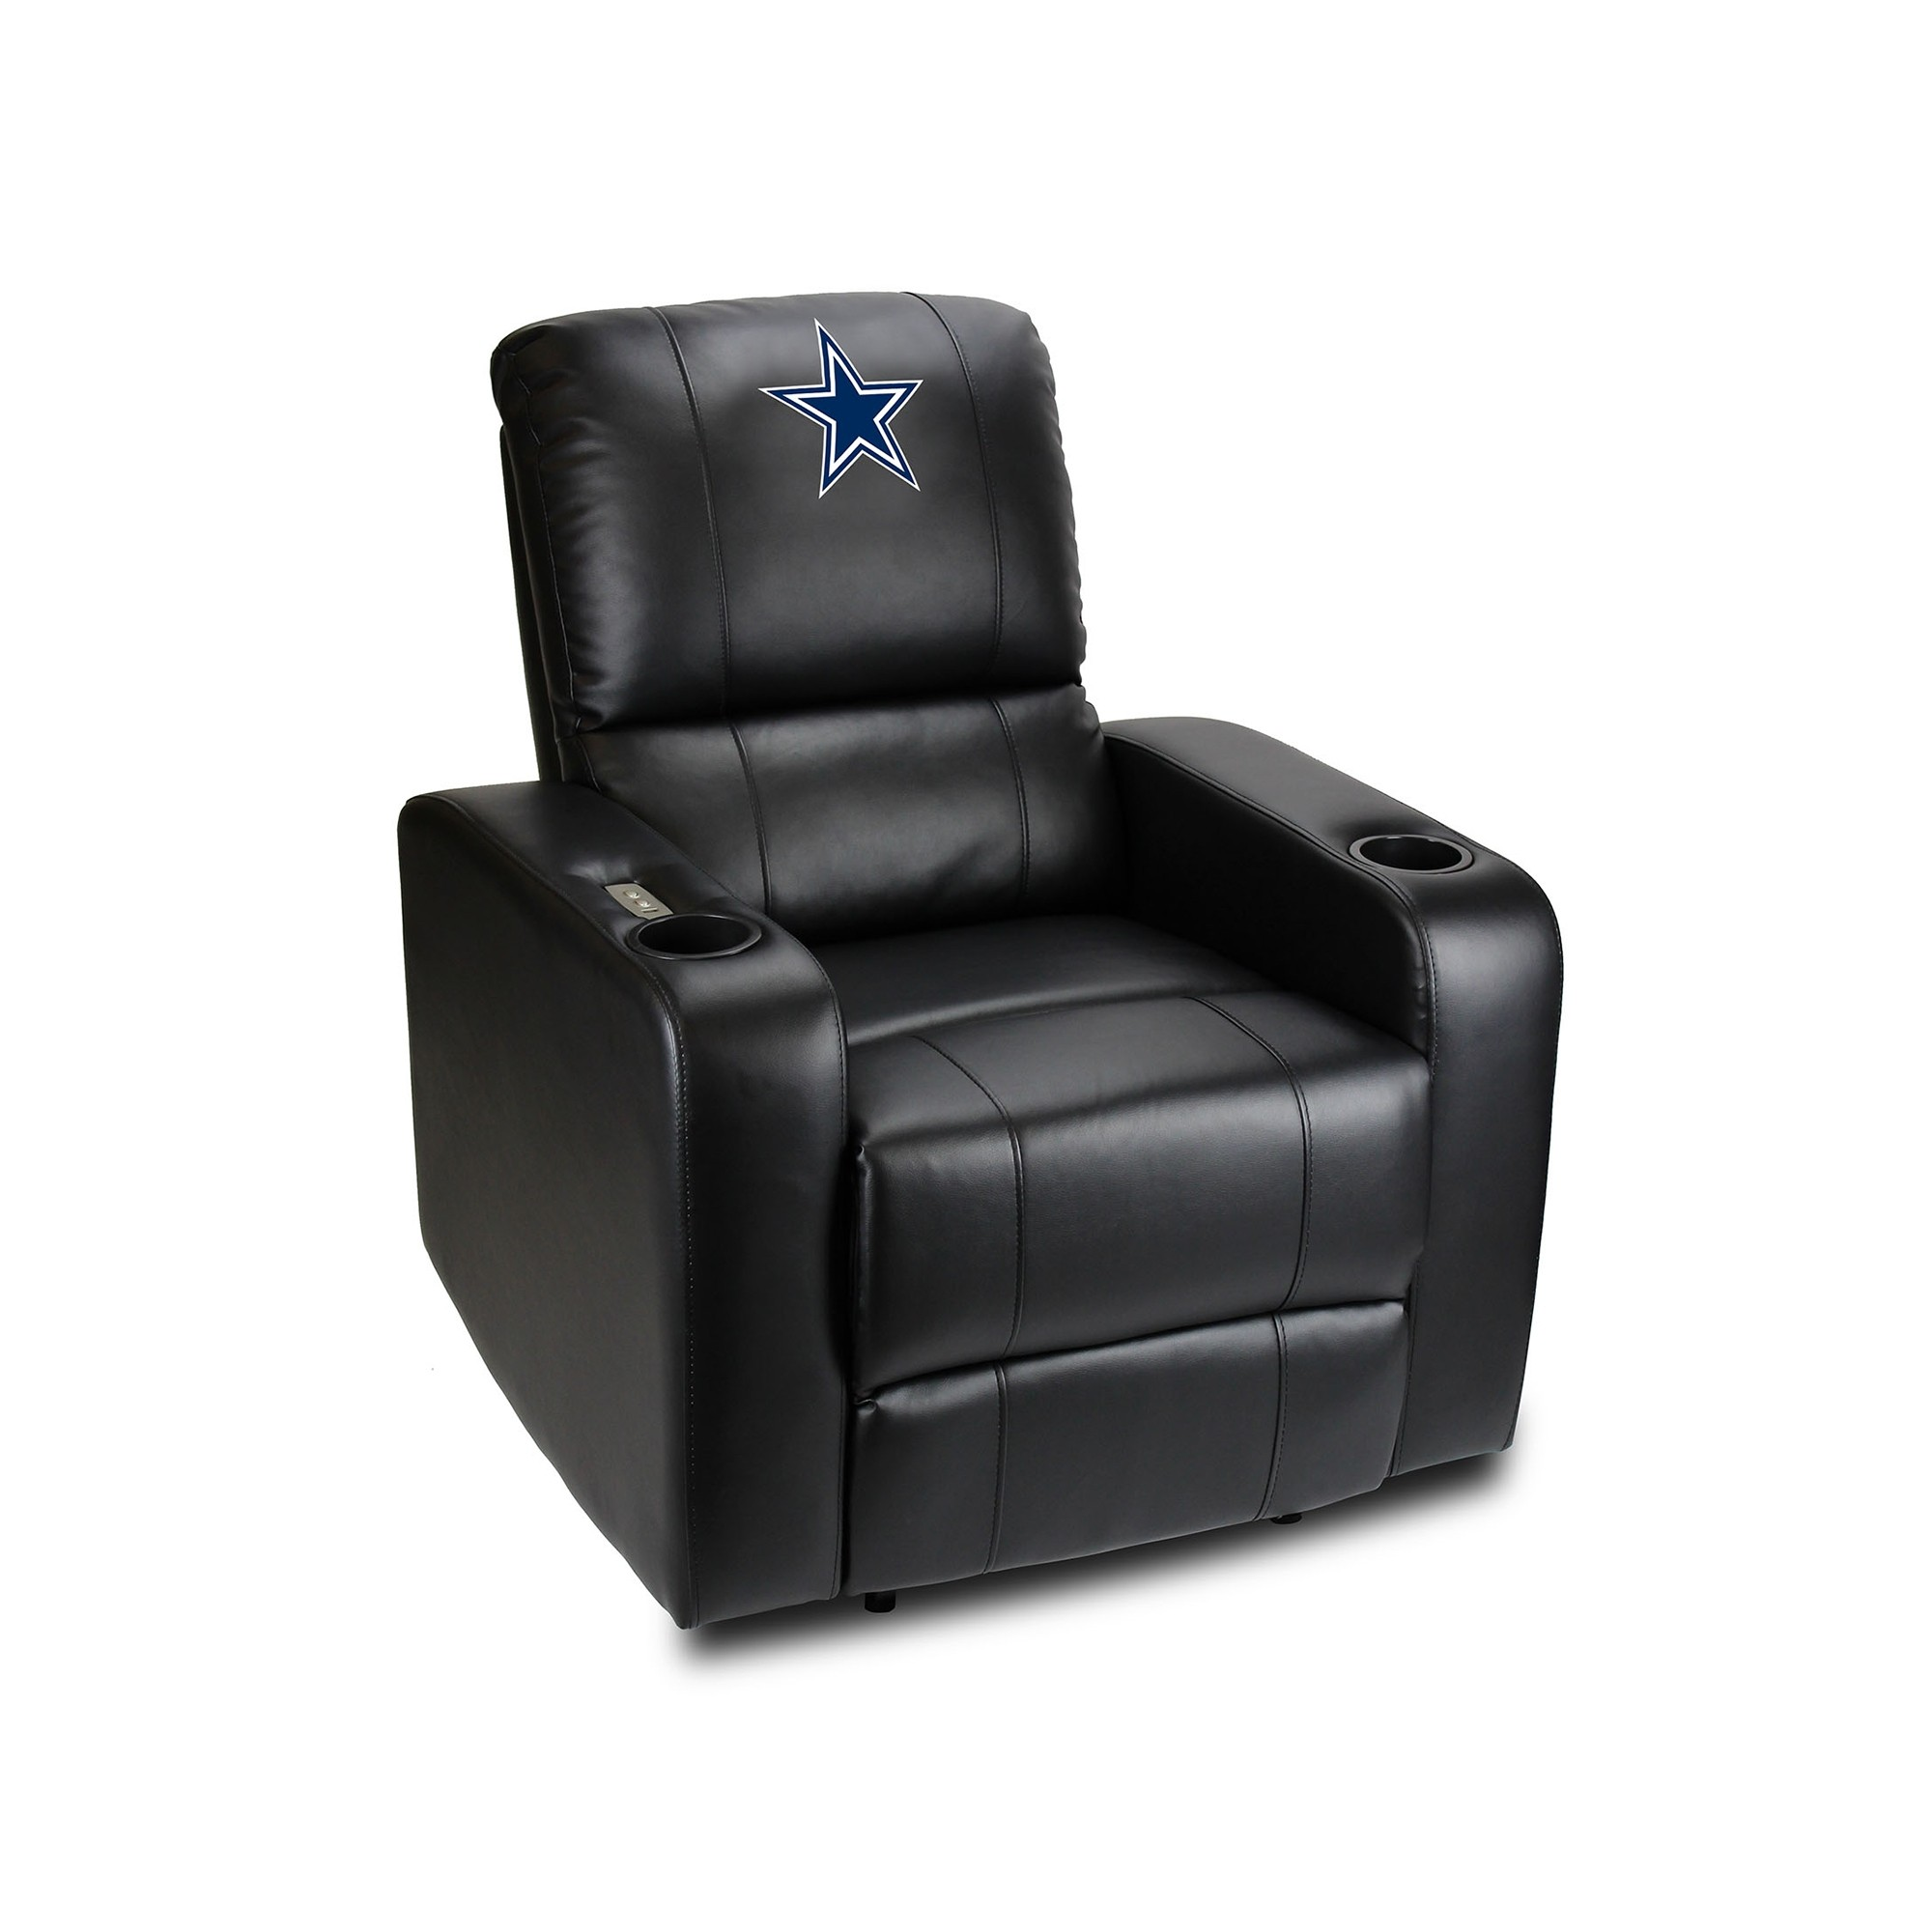 Dallas Cowboys Power Theater Recliner With Usb Port - 117-1002 - Nfl Football Dallas Cowboys Powerdecals 117-1002